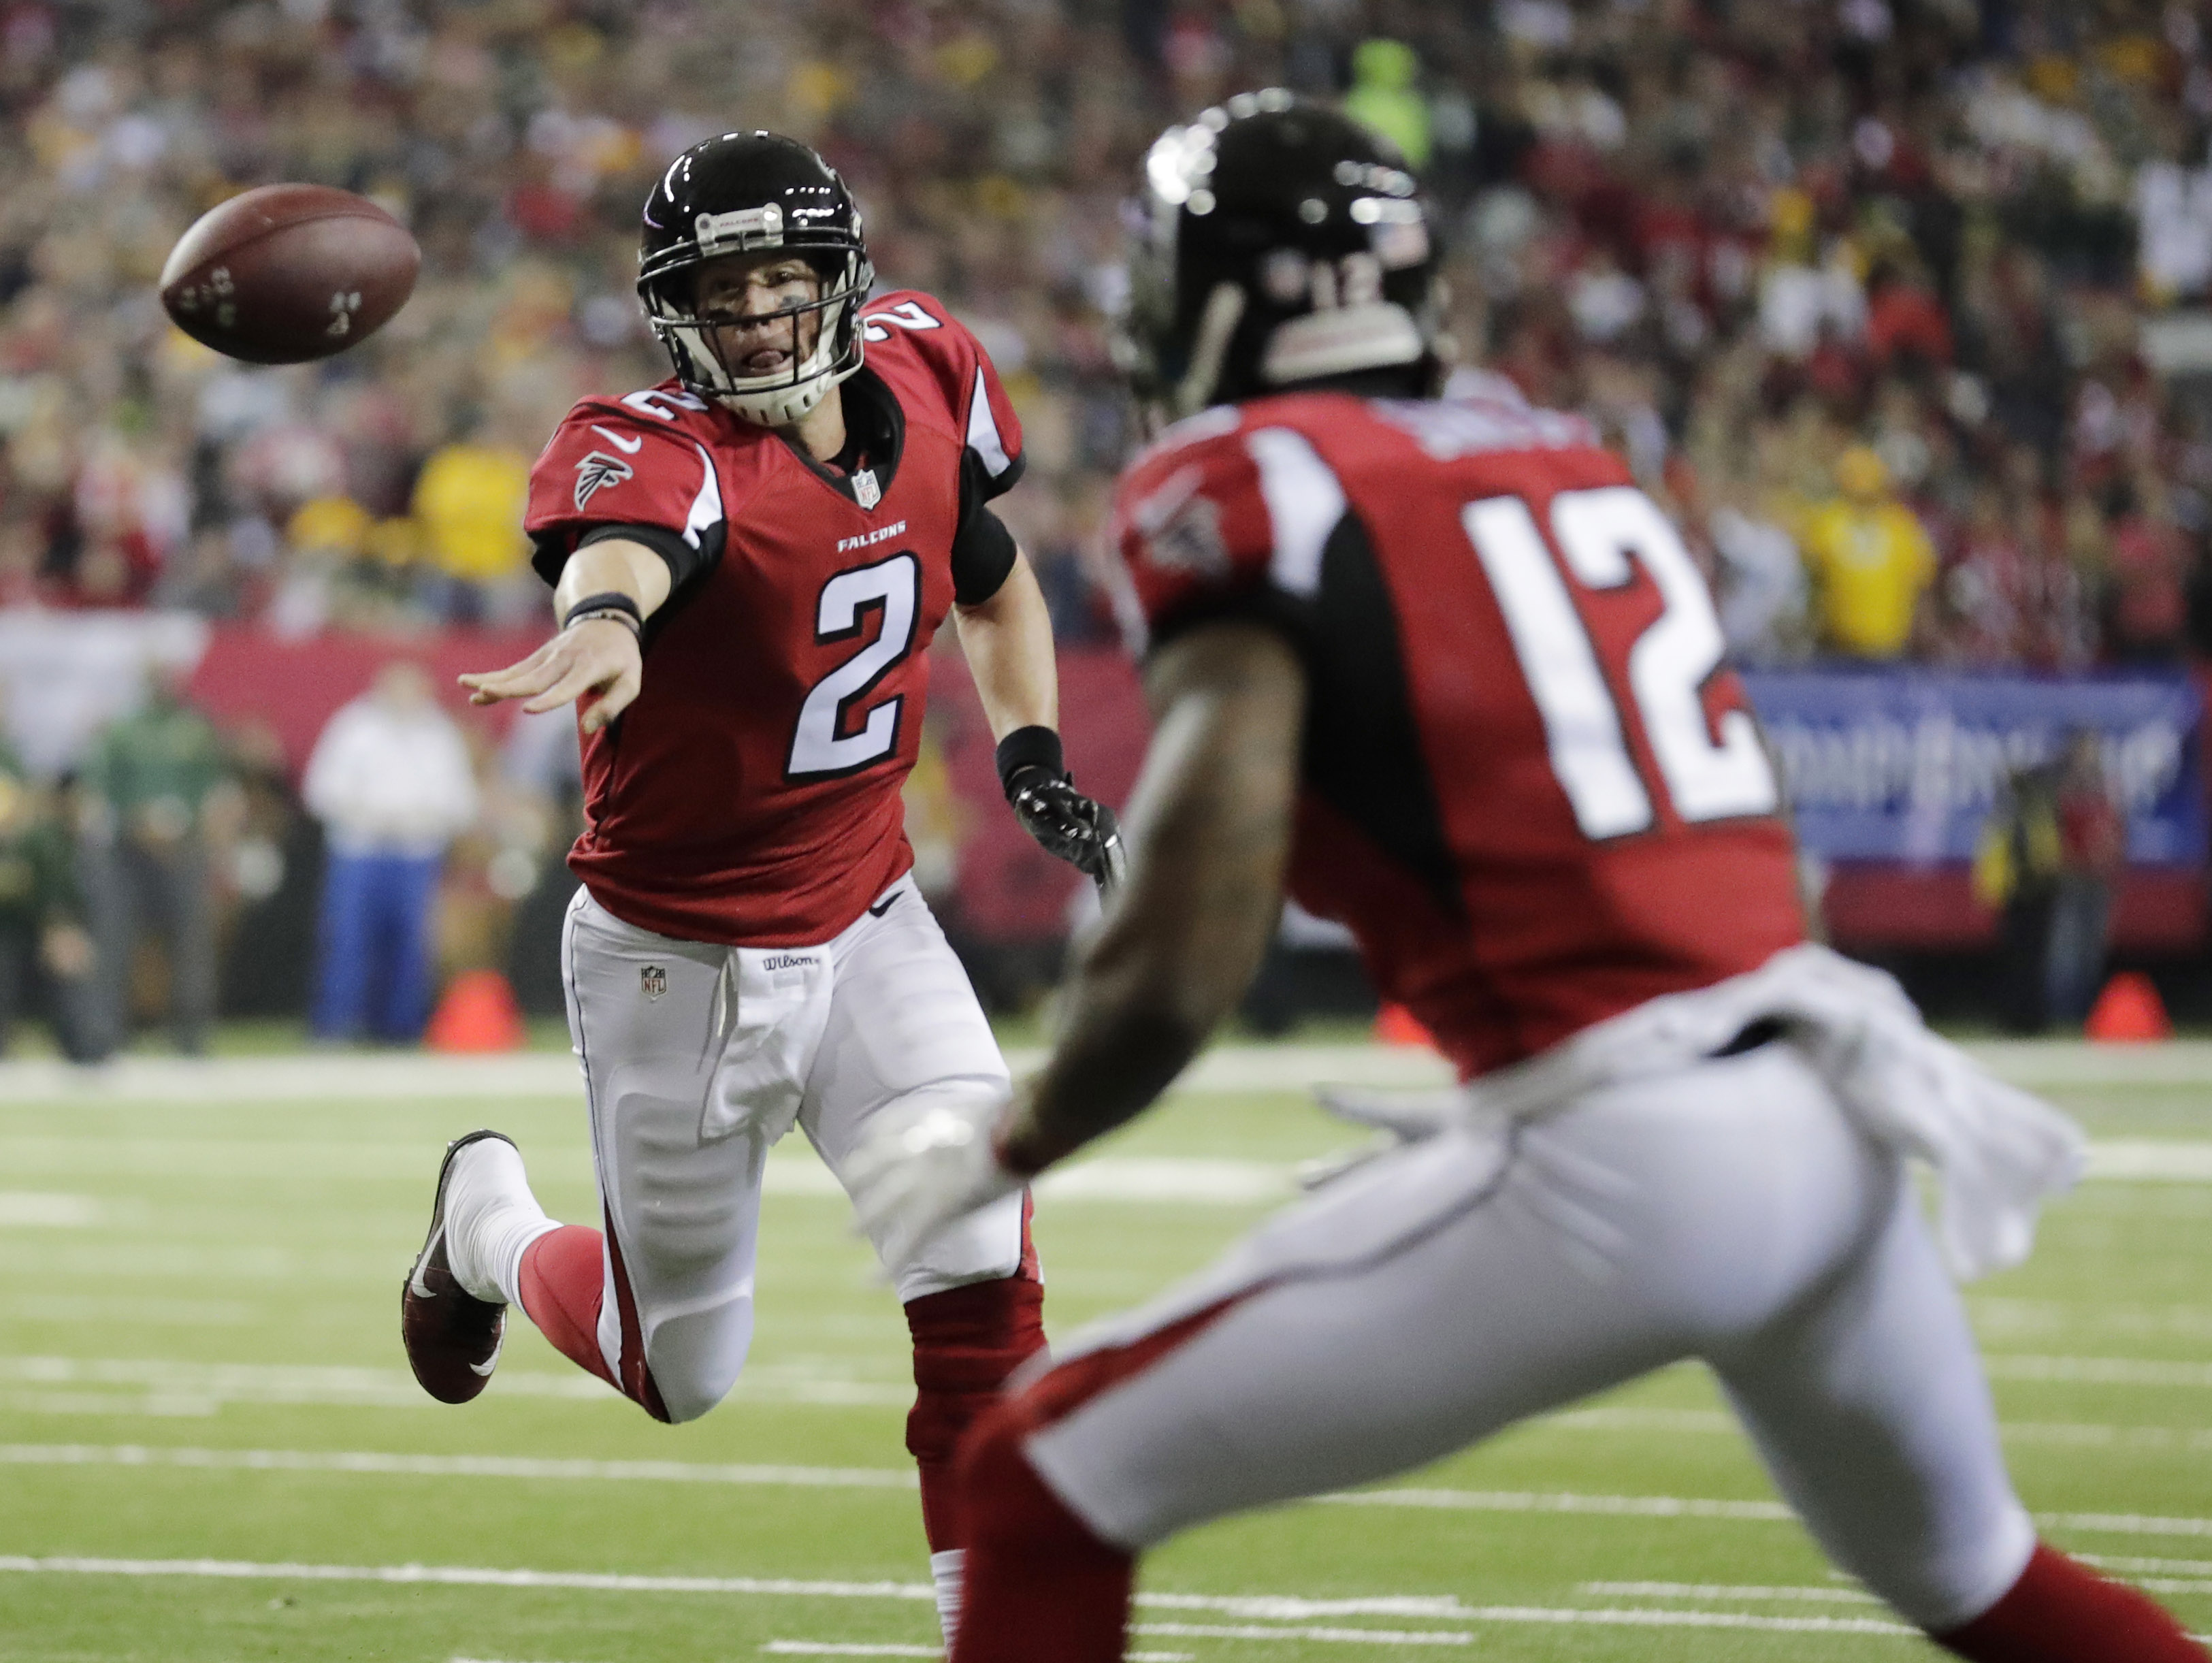 Kyle Shanahan: Pats' defense best Falcons have seen